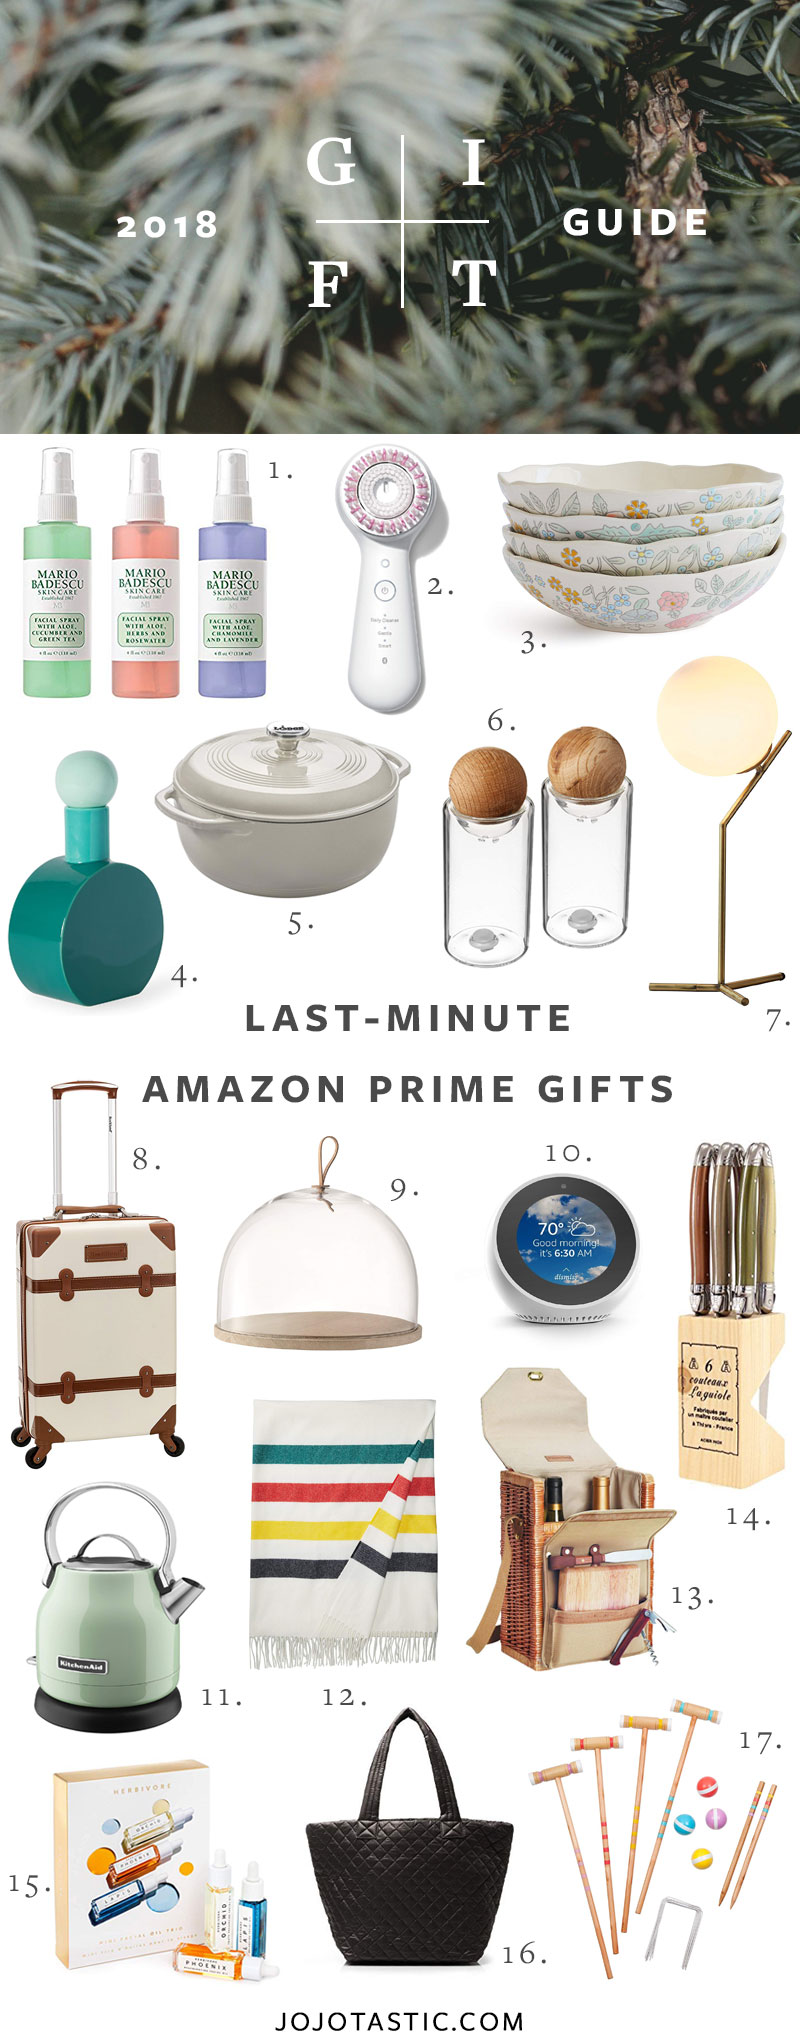 Last Minute Amazon Prime Gift Guide for Christmas & Holidays 2018 via jojotastic.com #giftguide #giftidea #giftgiving #gifts #presents #christmaspresents #christmasgiftideas #christmasgift #amazonprime #lastminutegifts #lastminutechristmasgifts #lastminutegiftideas #specialgifts